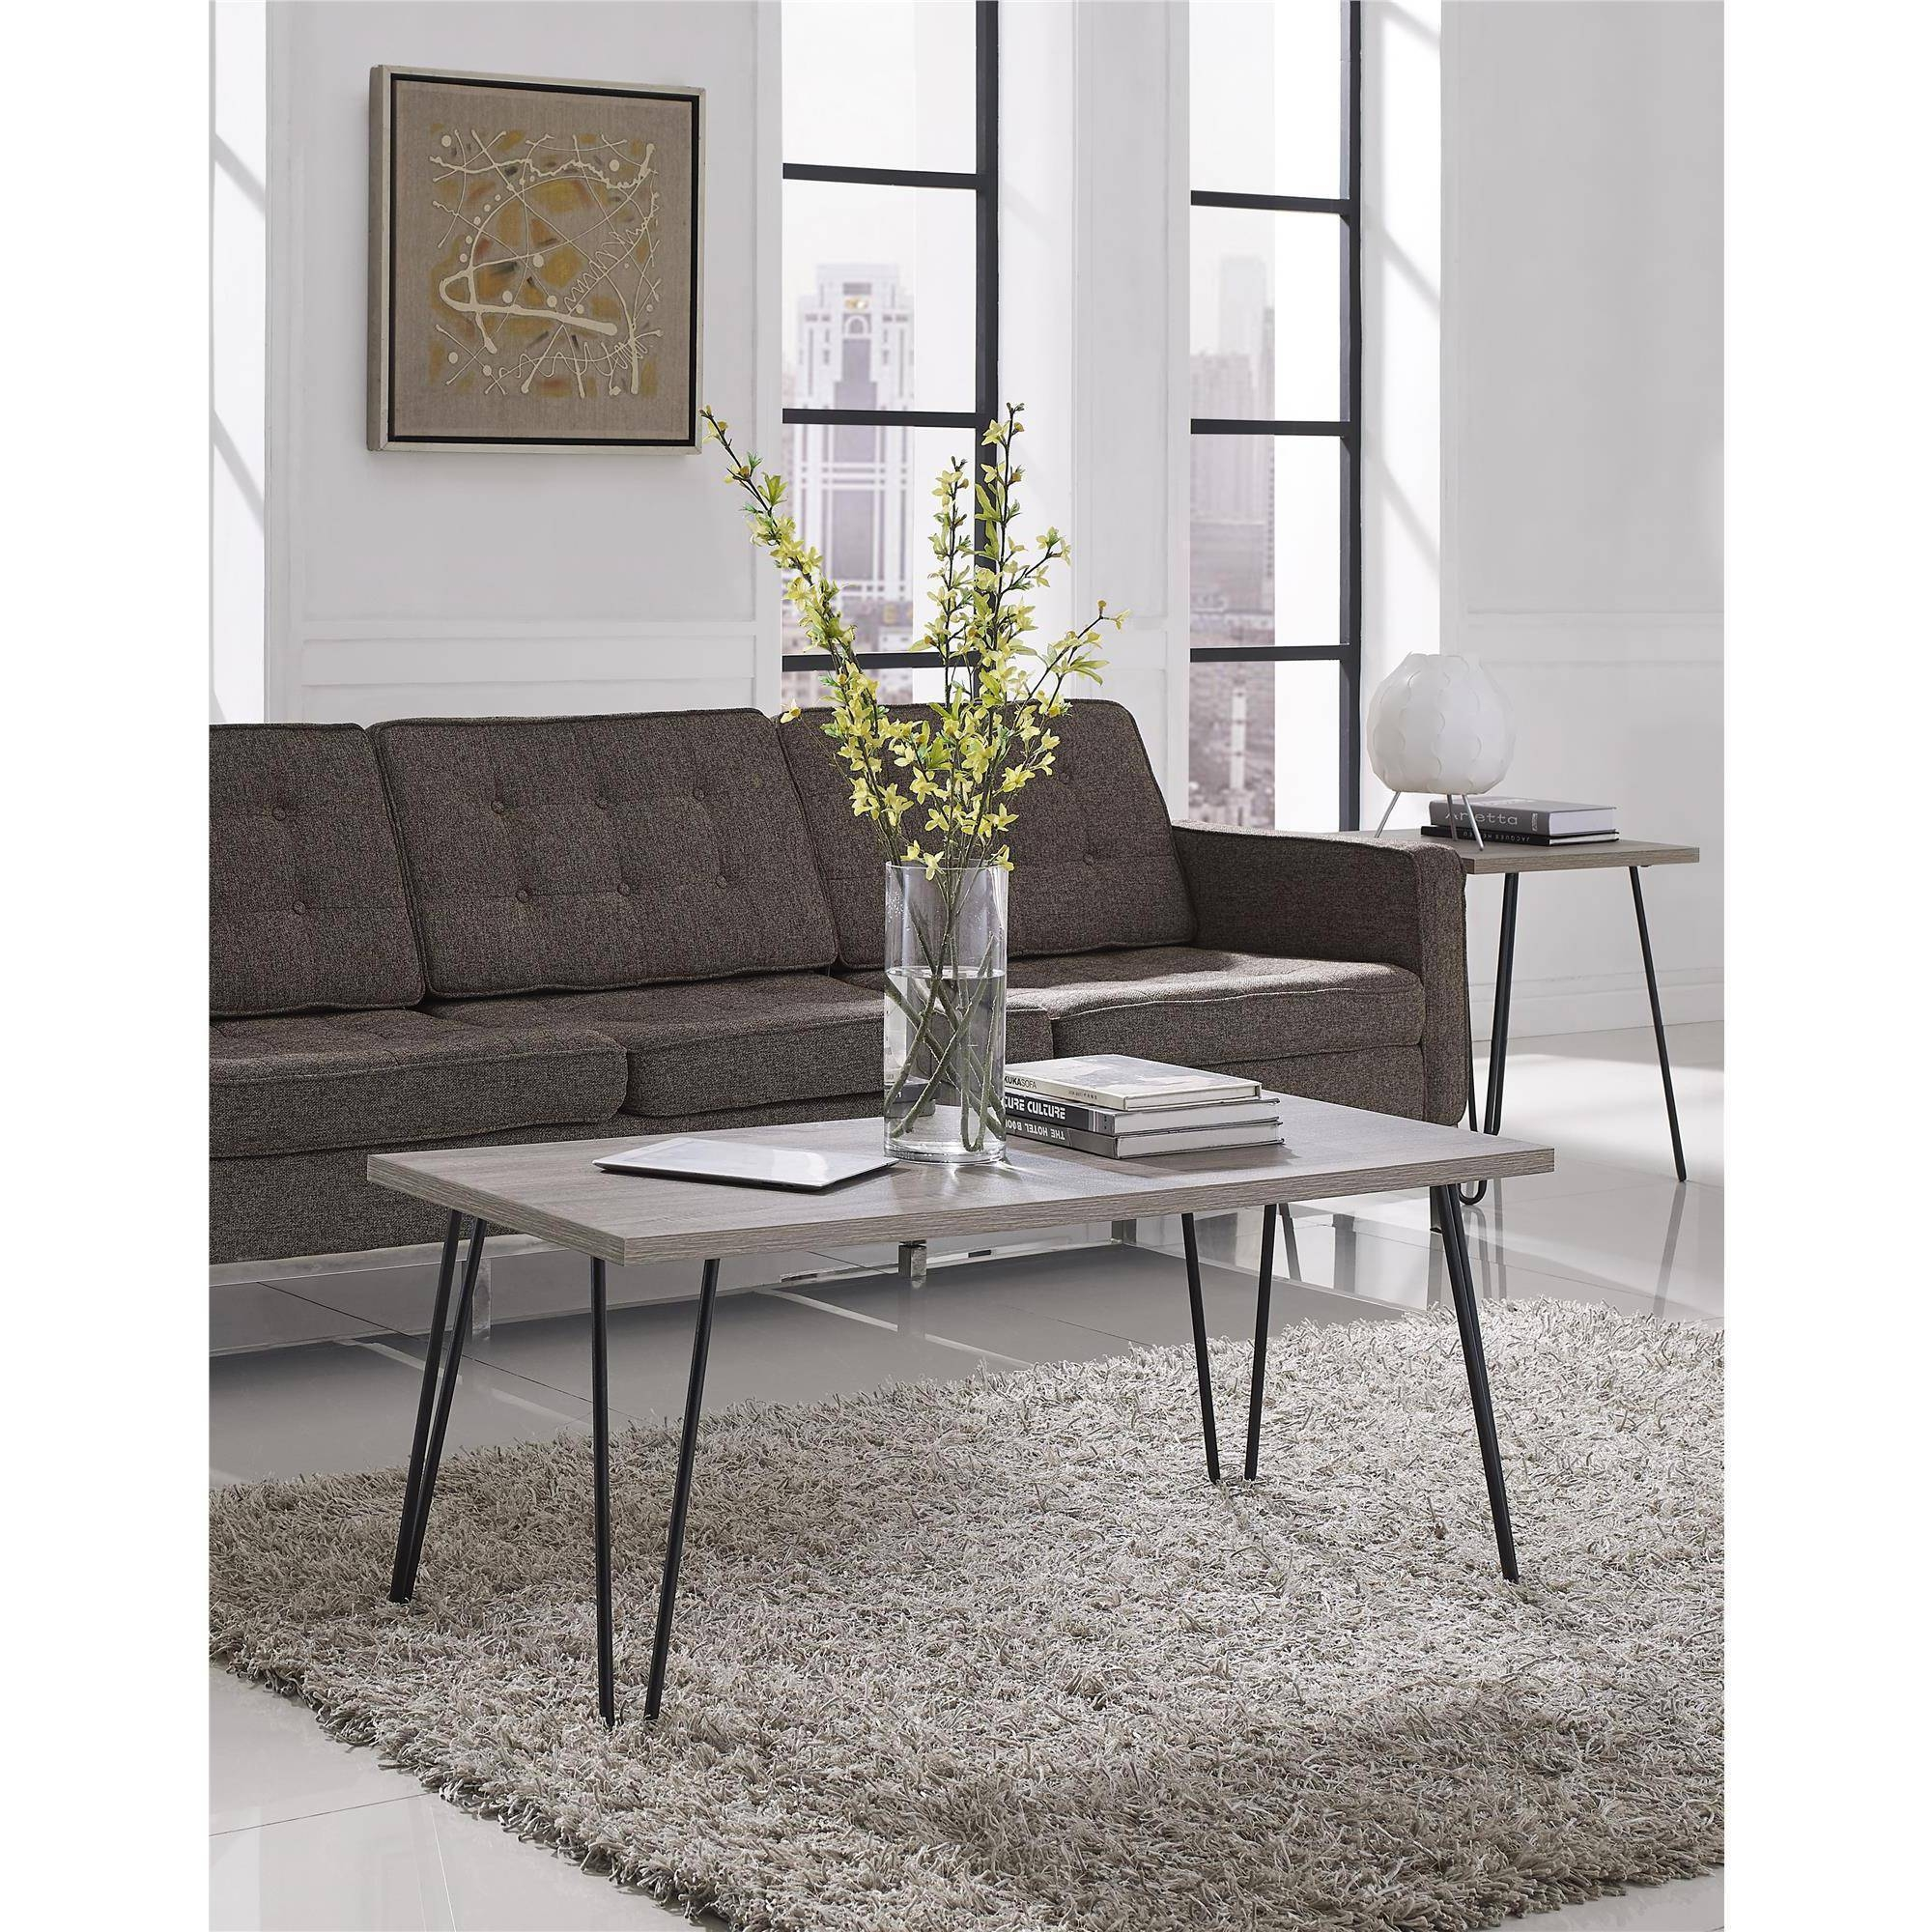 Ameriwood Home Owen Retro Coffee Table, Distressed Gray Oak intended for Gray Wood Coffee Tables (Image 4 of 30)